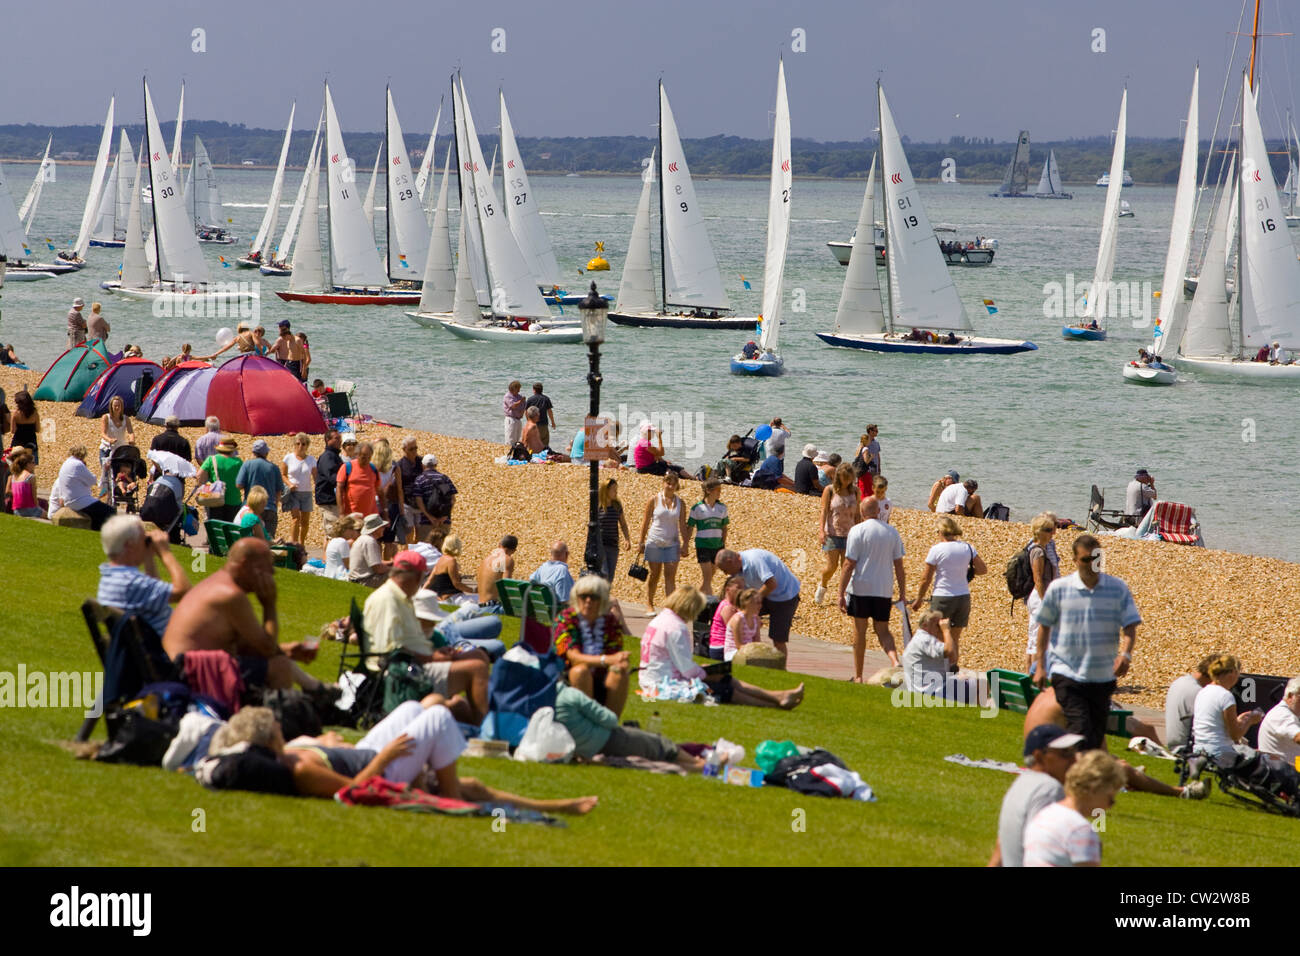 The Green, Spectators, Yacht Racing, Cowes Week, Cowes, Isle of Wight, England, UK, - Stock Image